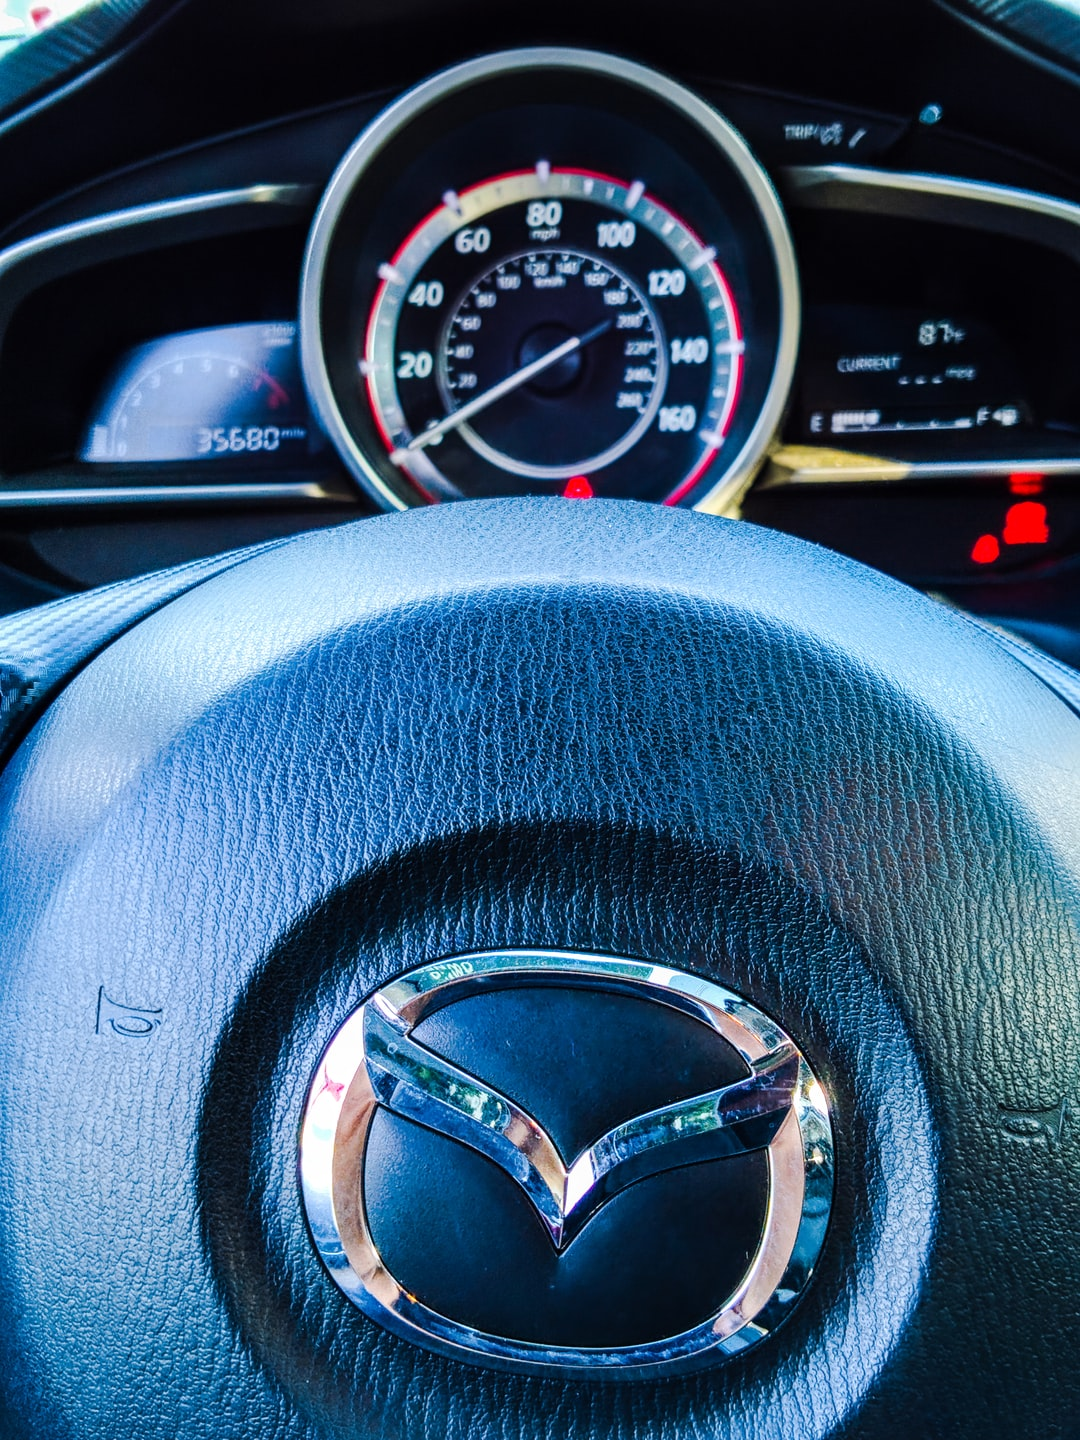 Closeup of a Mazda steering wheel and tachometer.